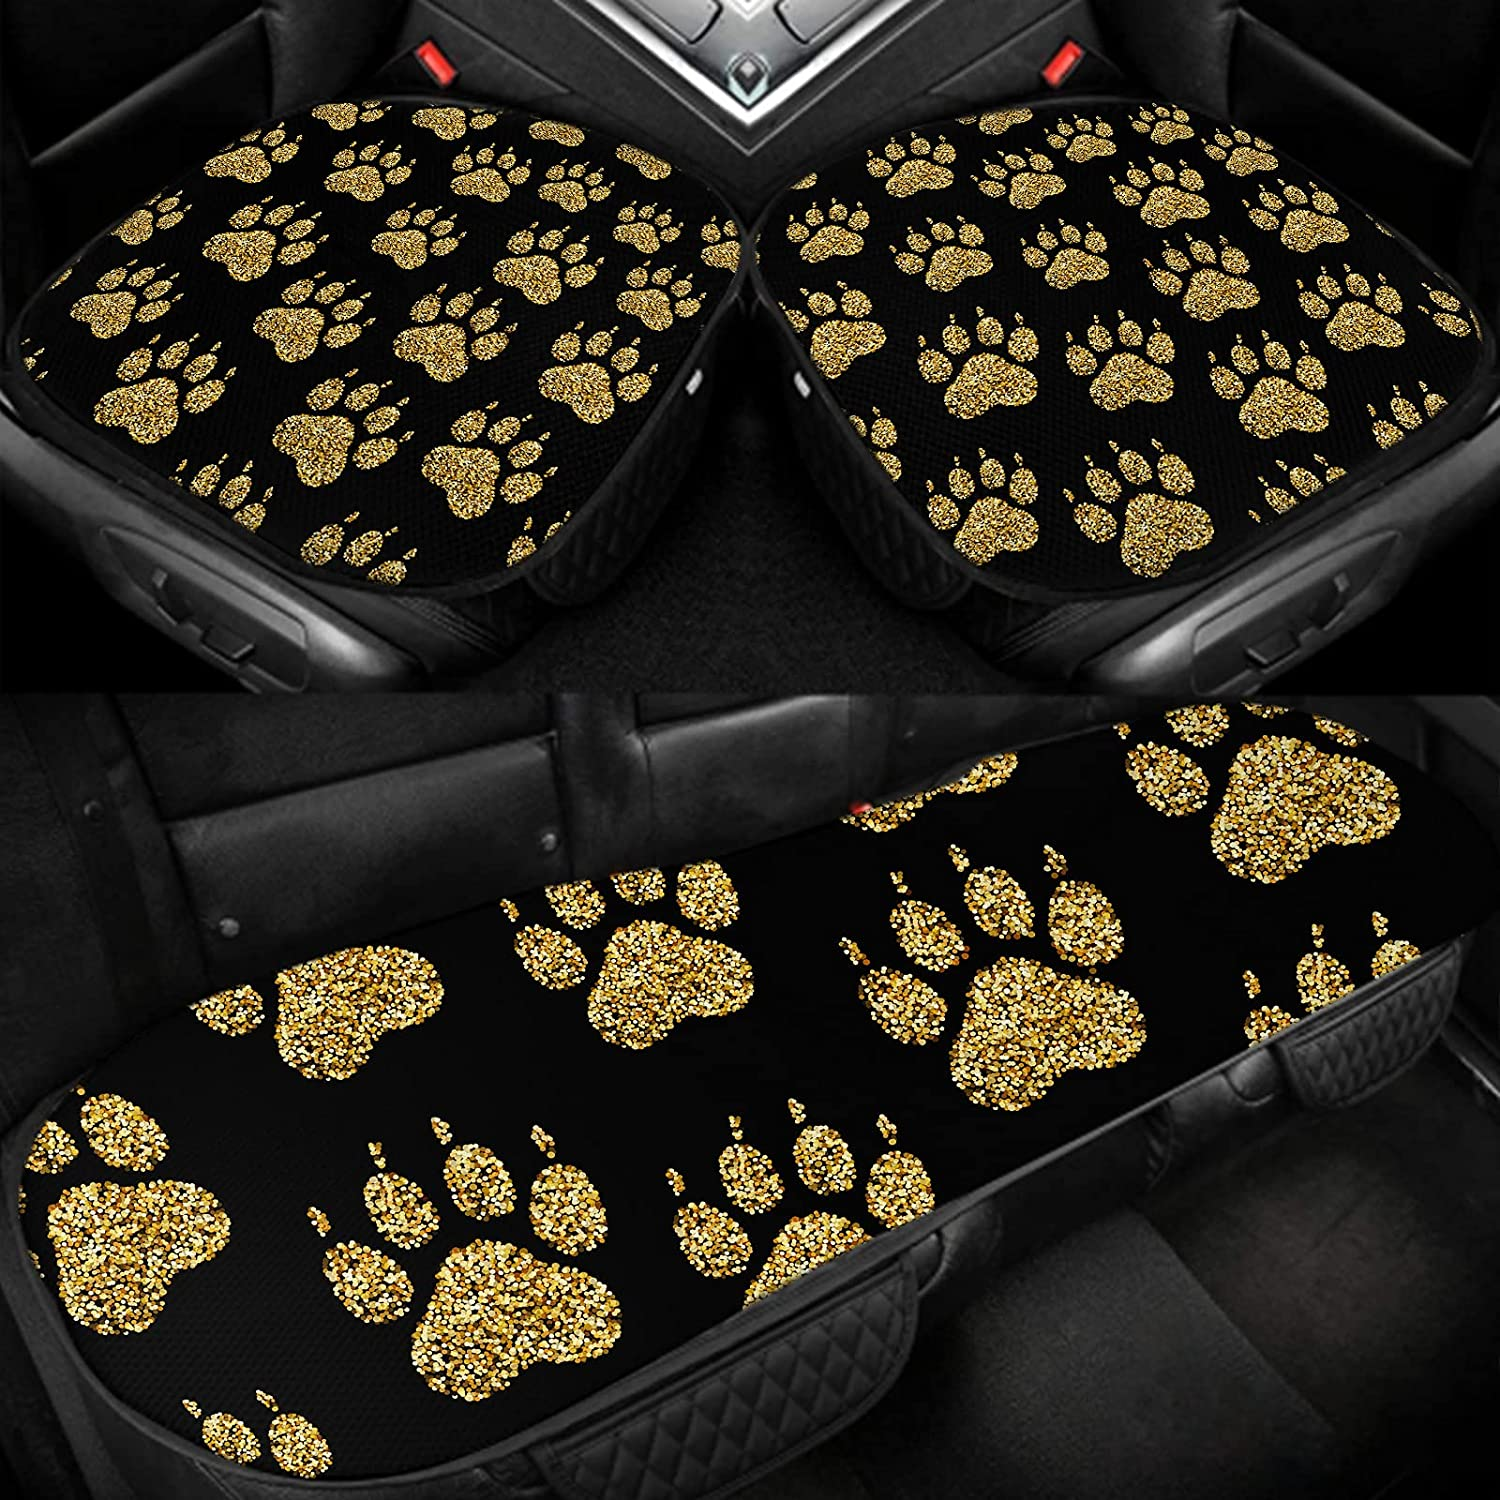 SSOIU Dog Paw Car Seat Our shop OFFers the best service Covers Ice Si Golden Prints Black paw Some reservation